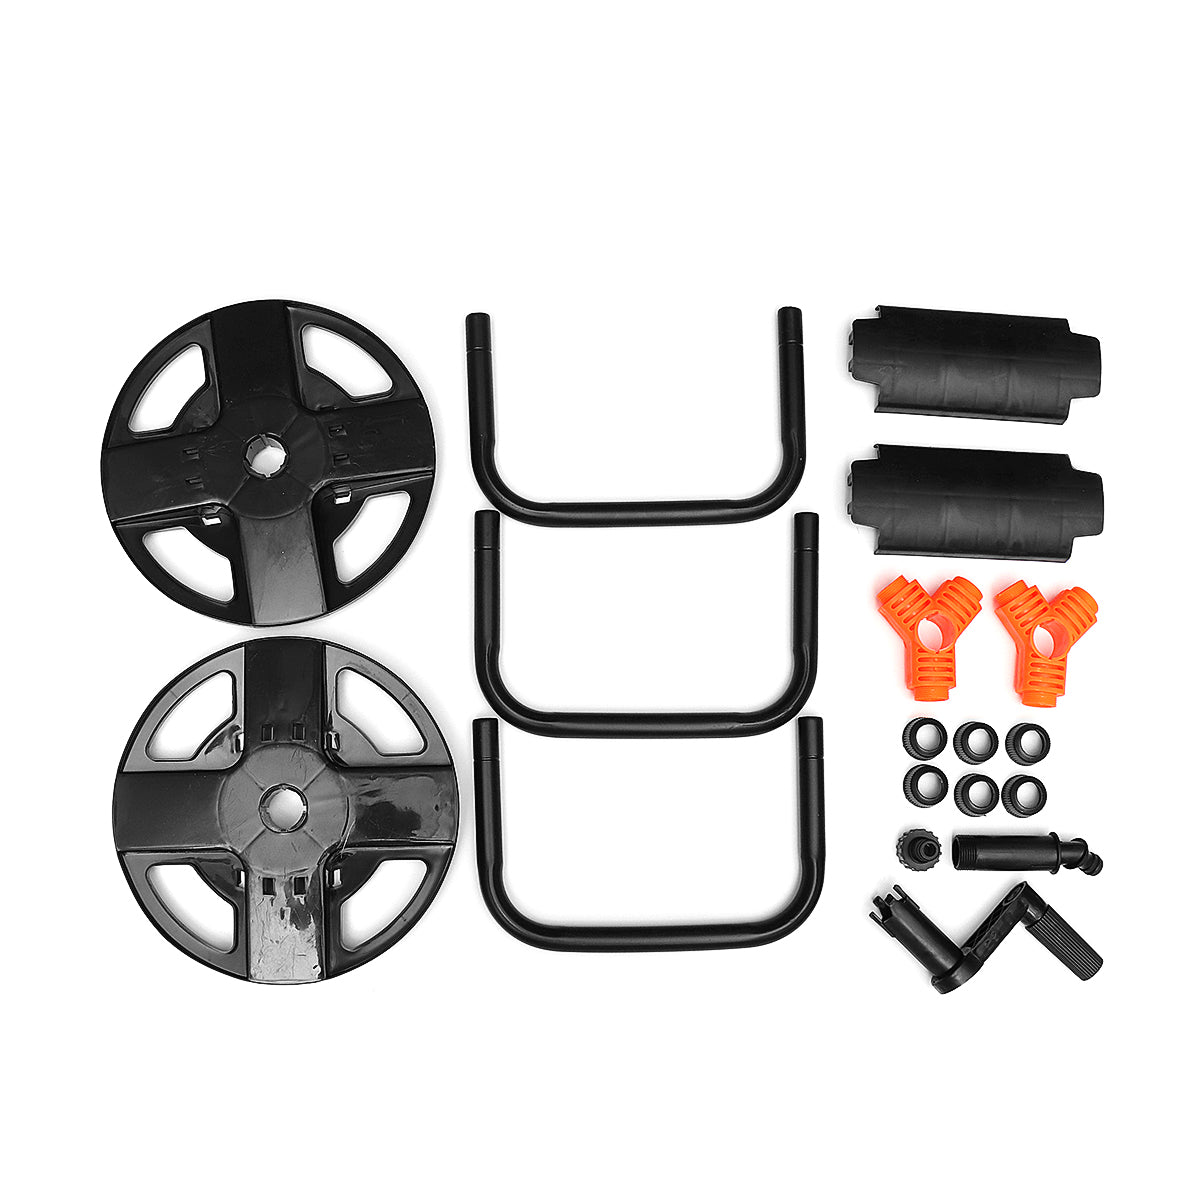 Portable Black Garden Hose Reel